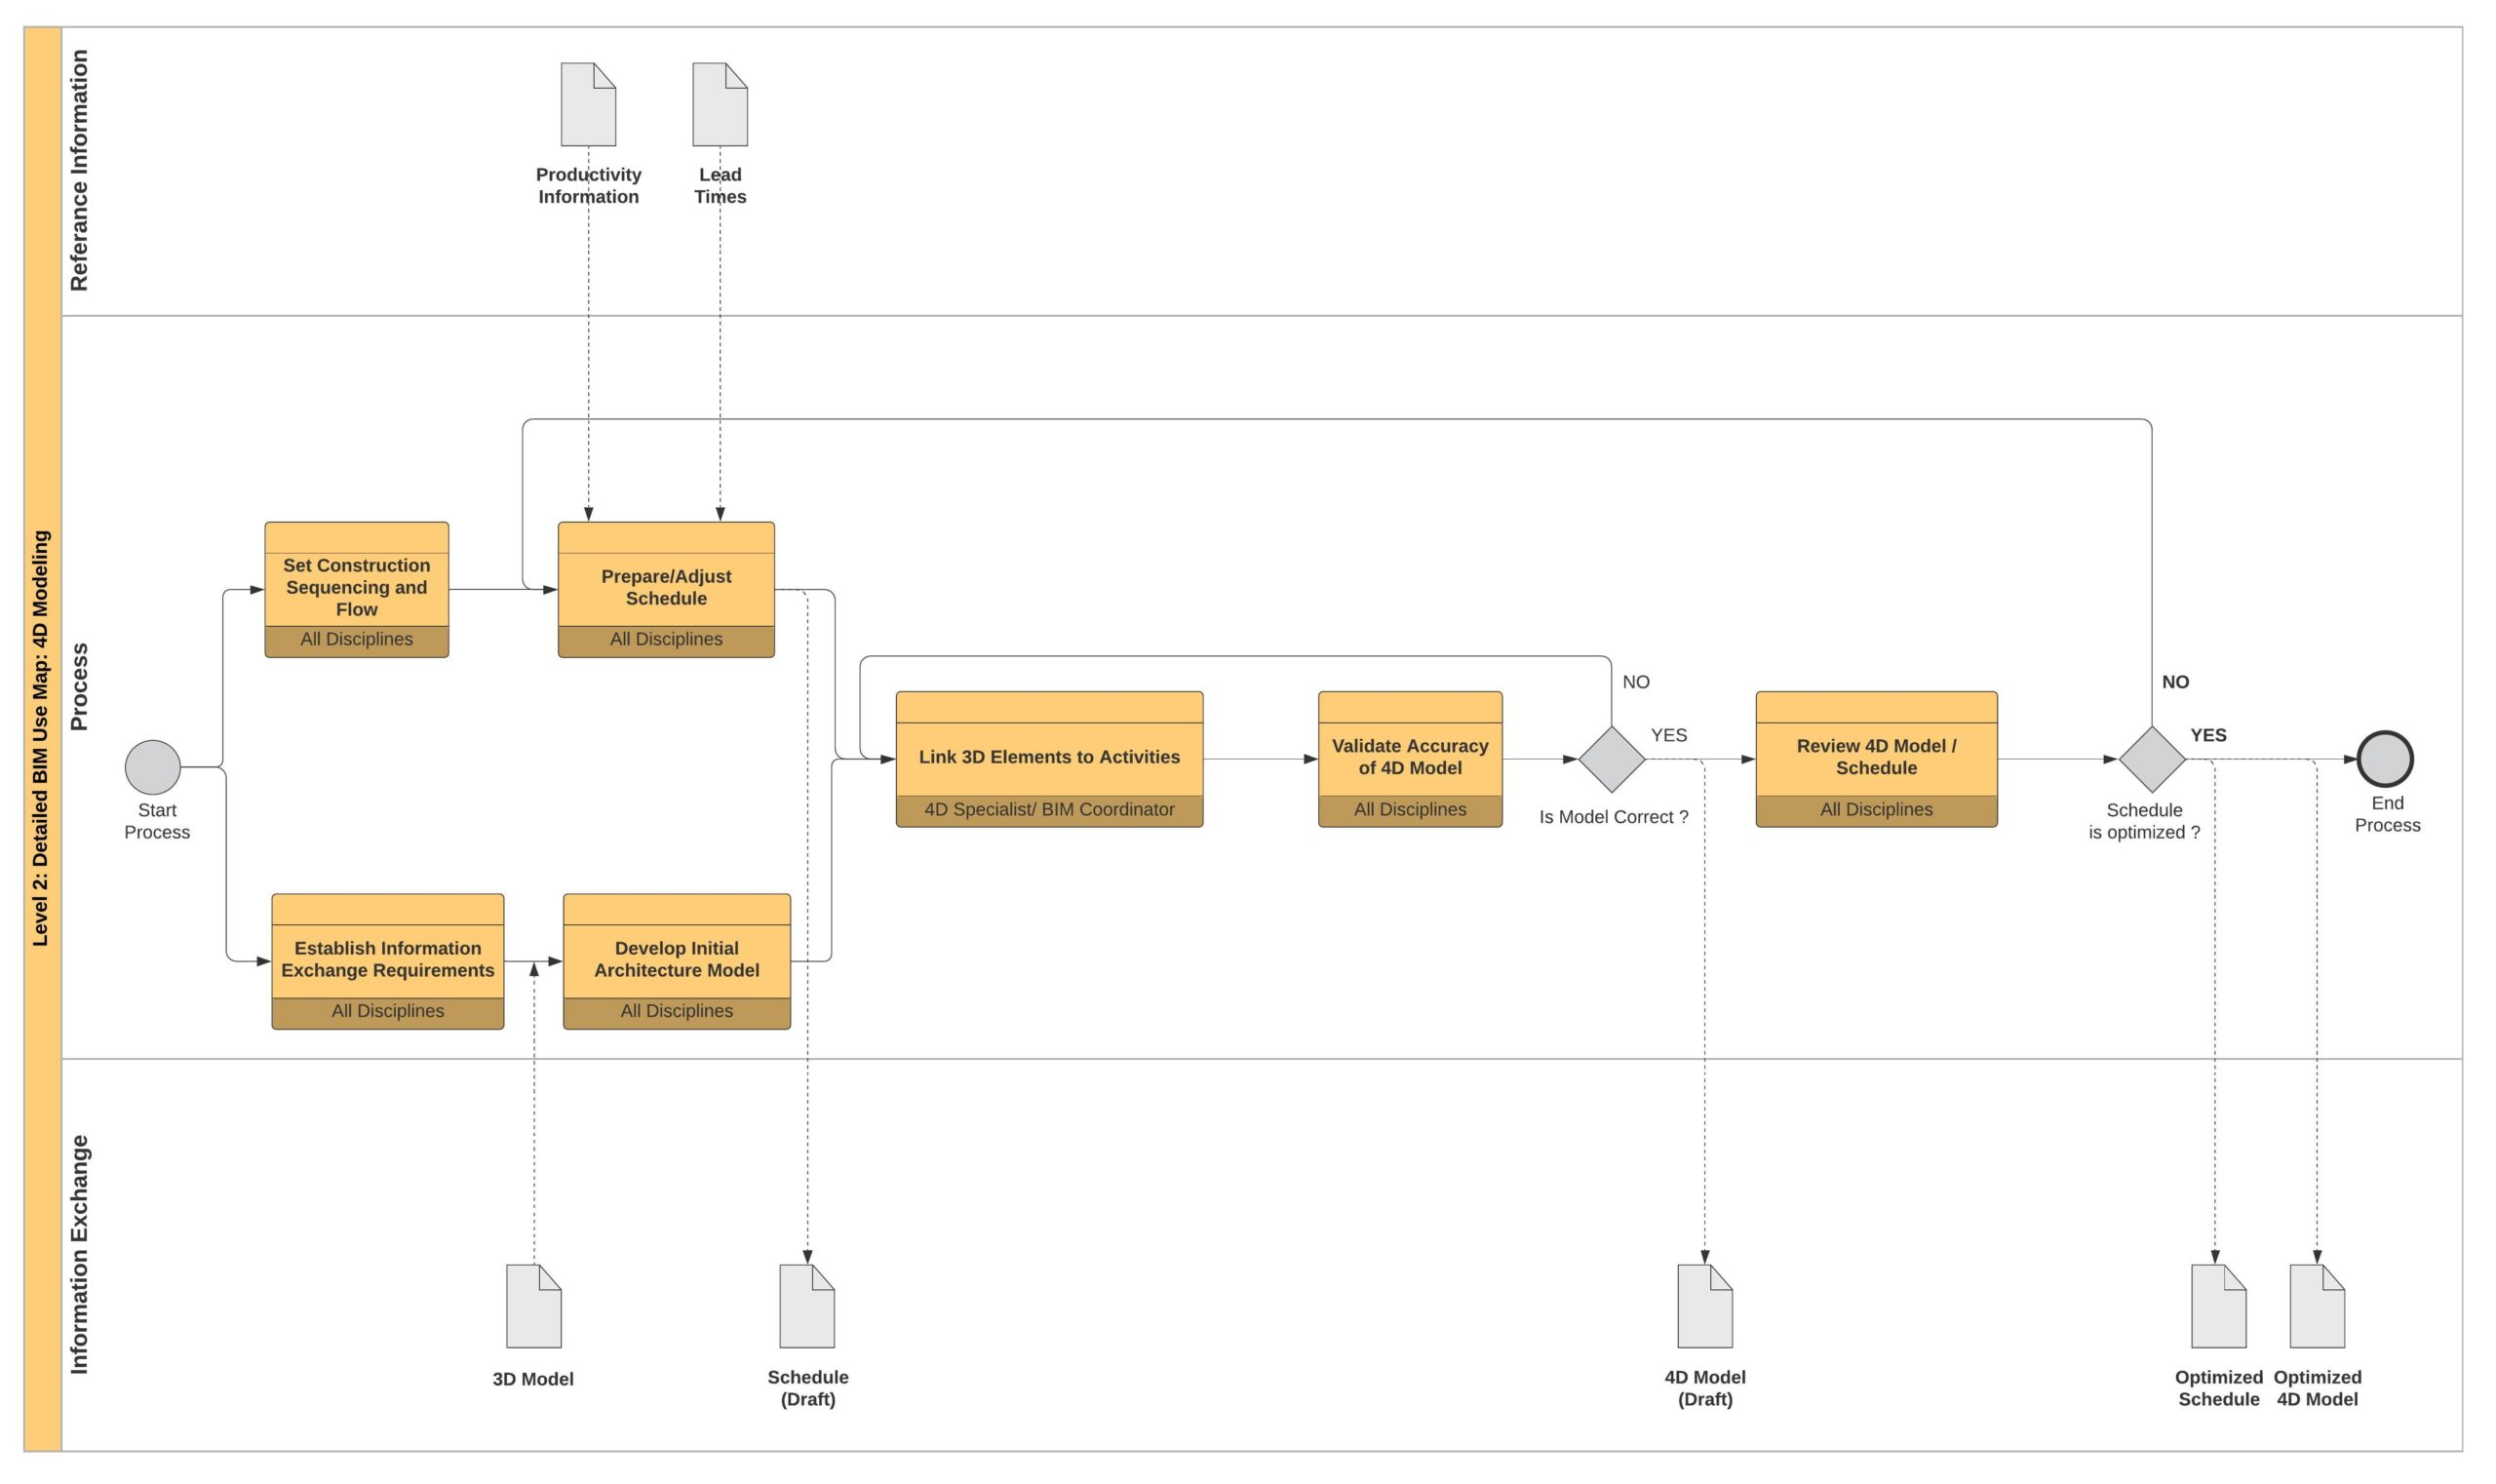 Example of Detailed BIM Use process map - 4D Simulation